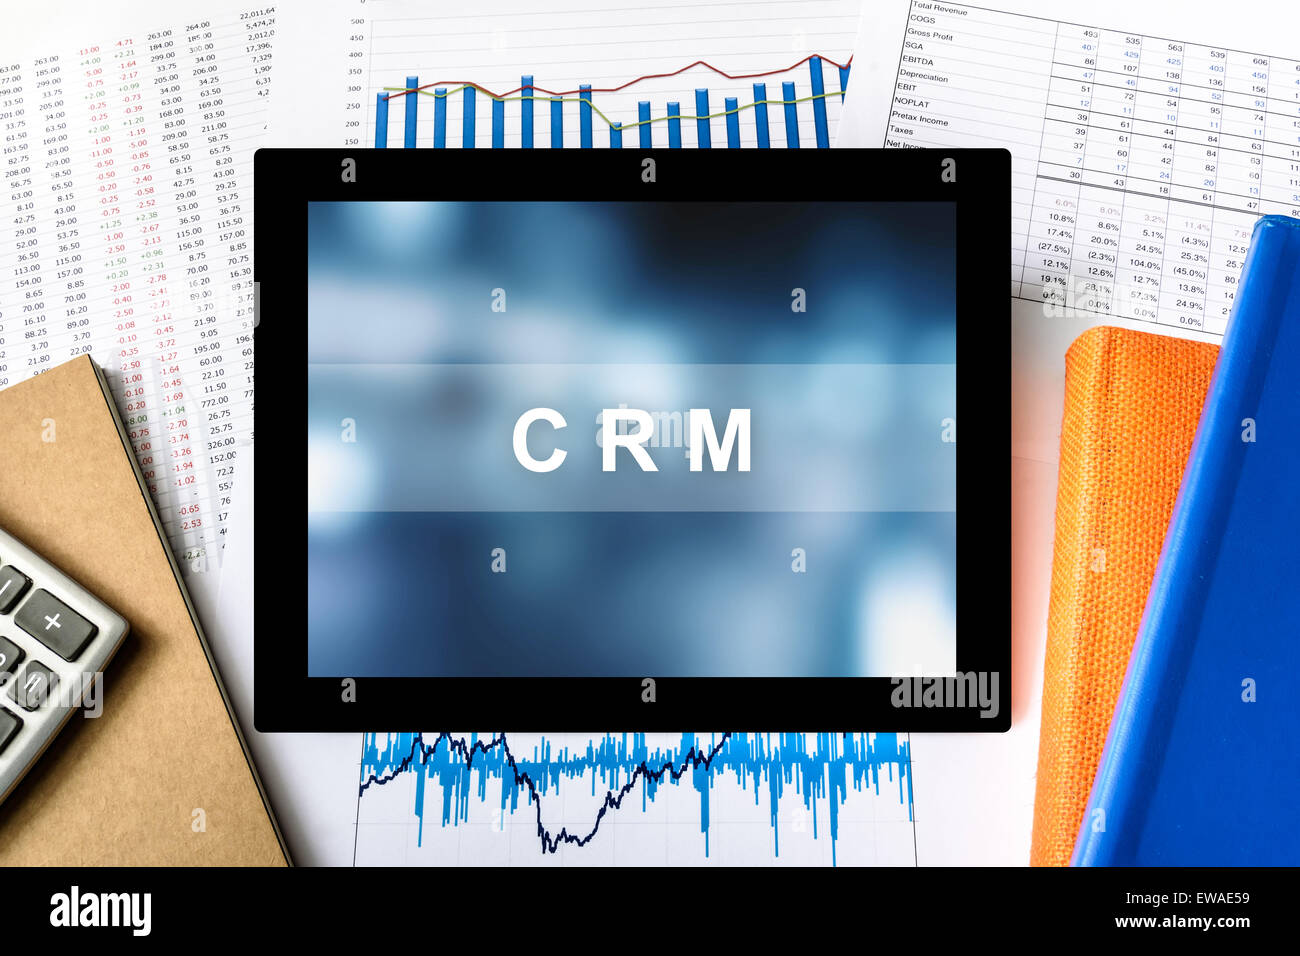 CRM or Customer relationship management word on tablet with financial graph background - Stock Image